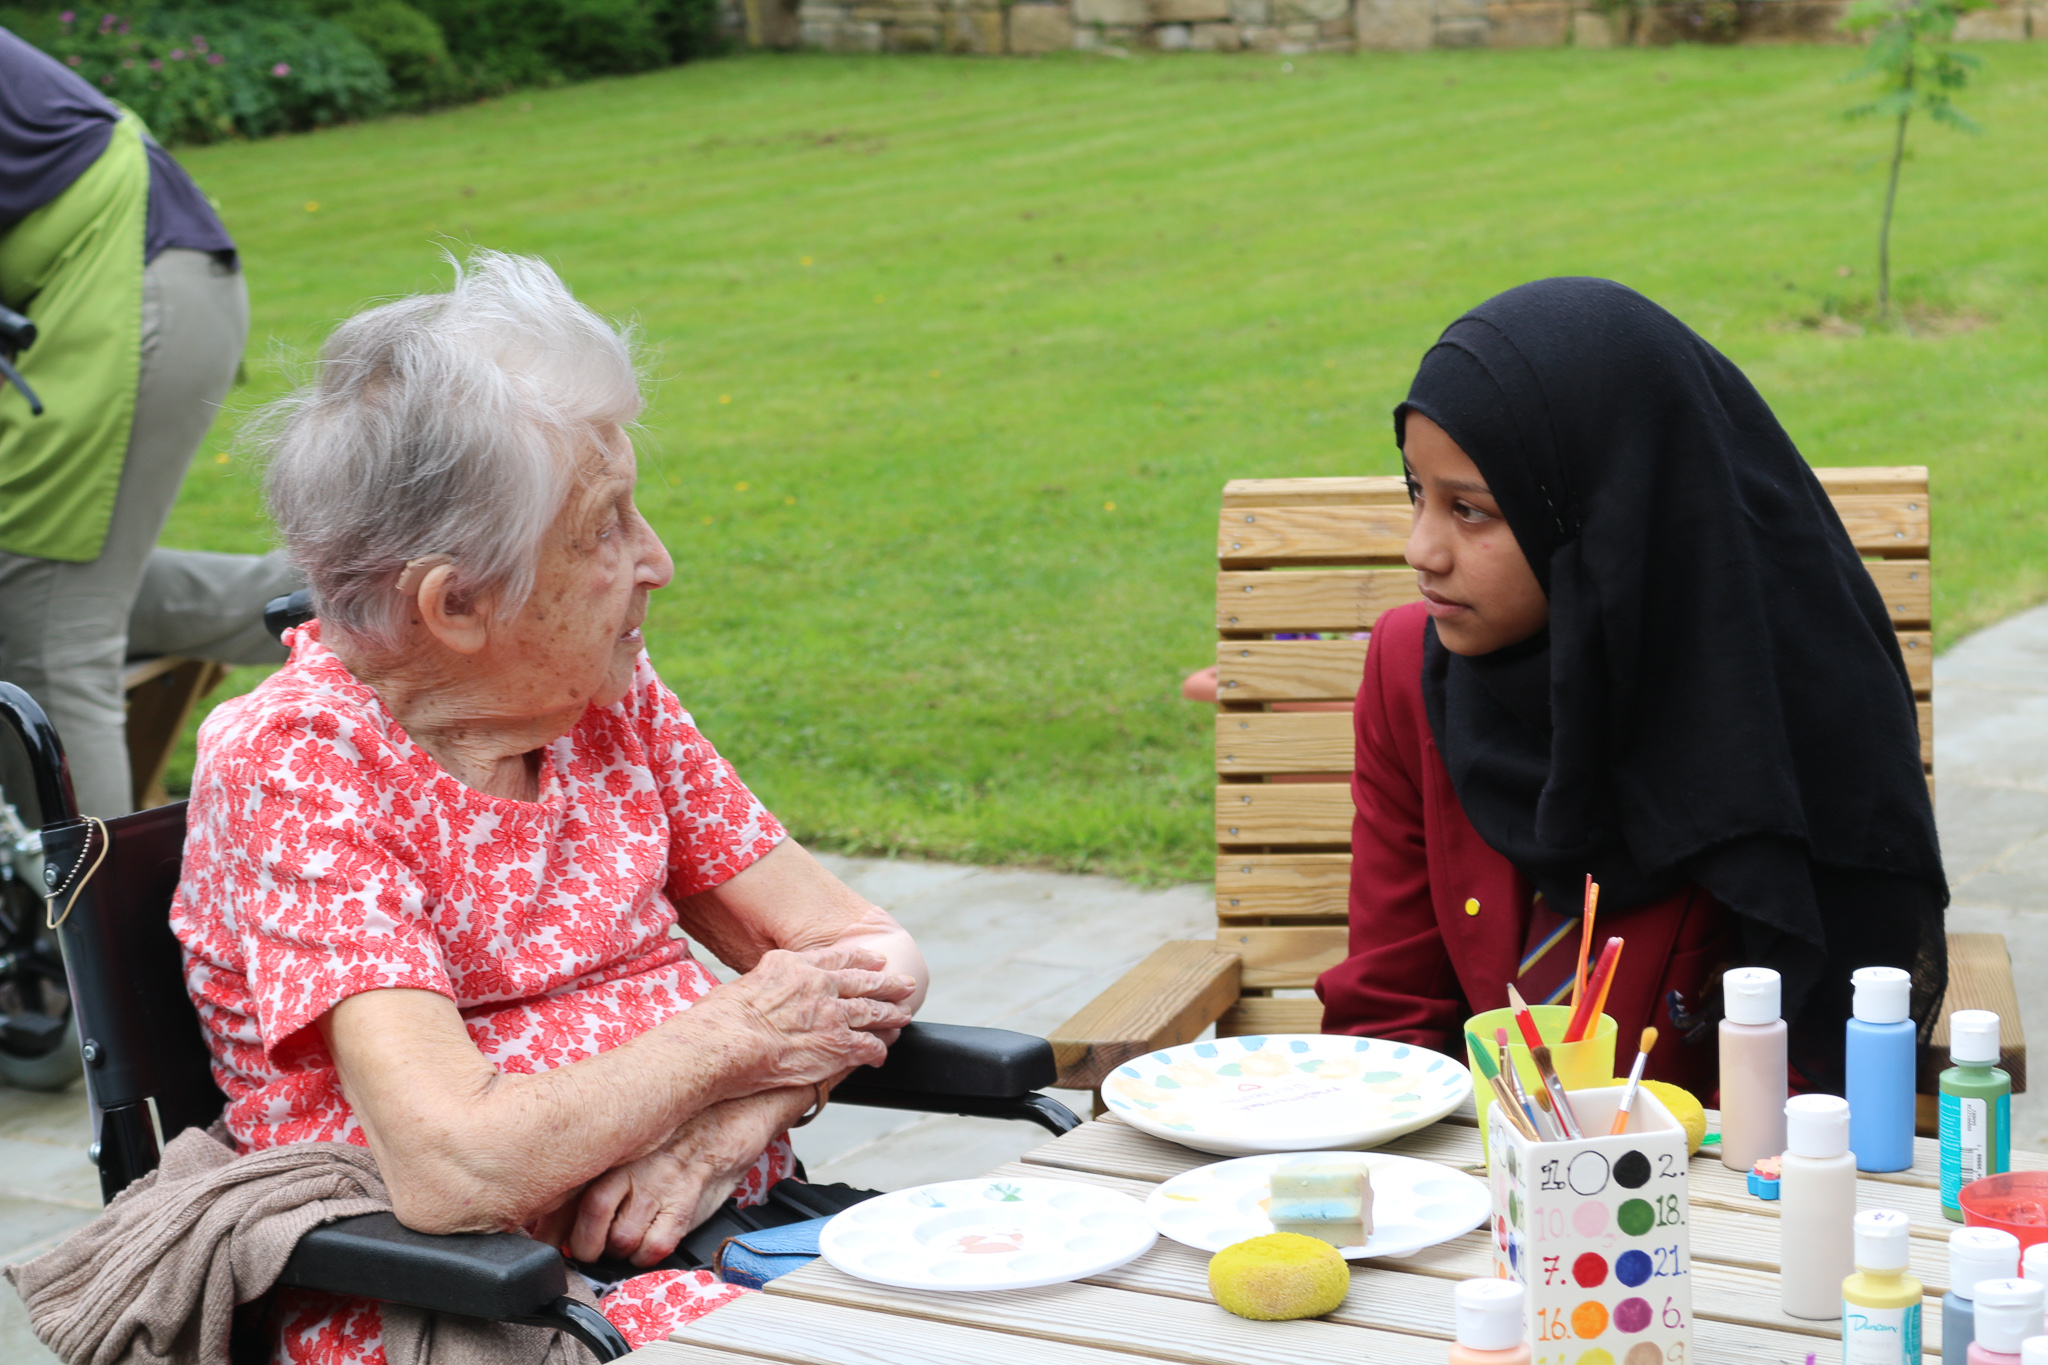 The Importance of Intergenerational Social Action